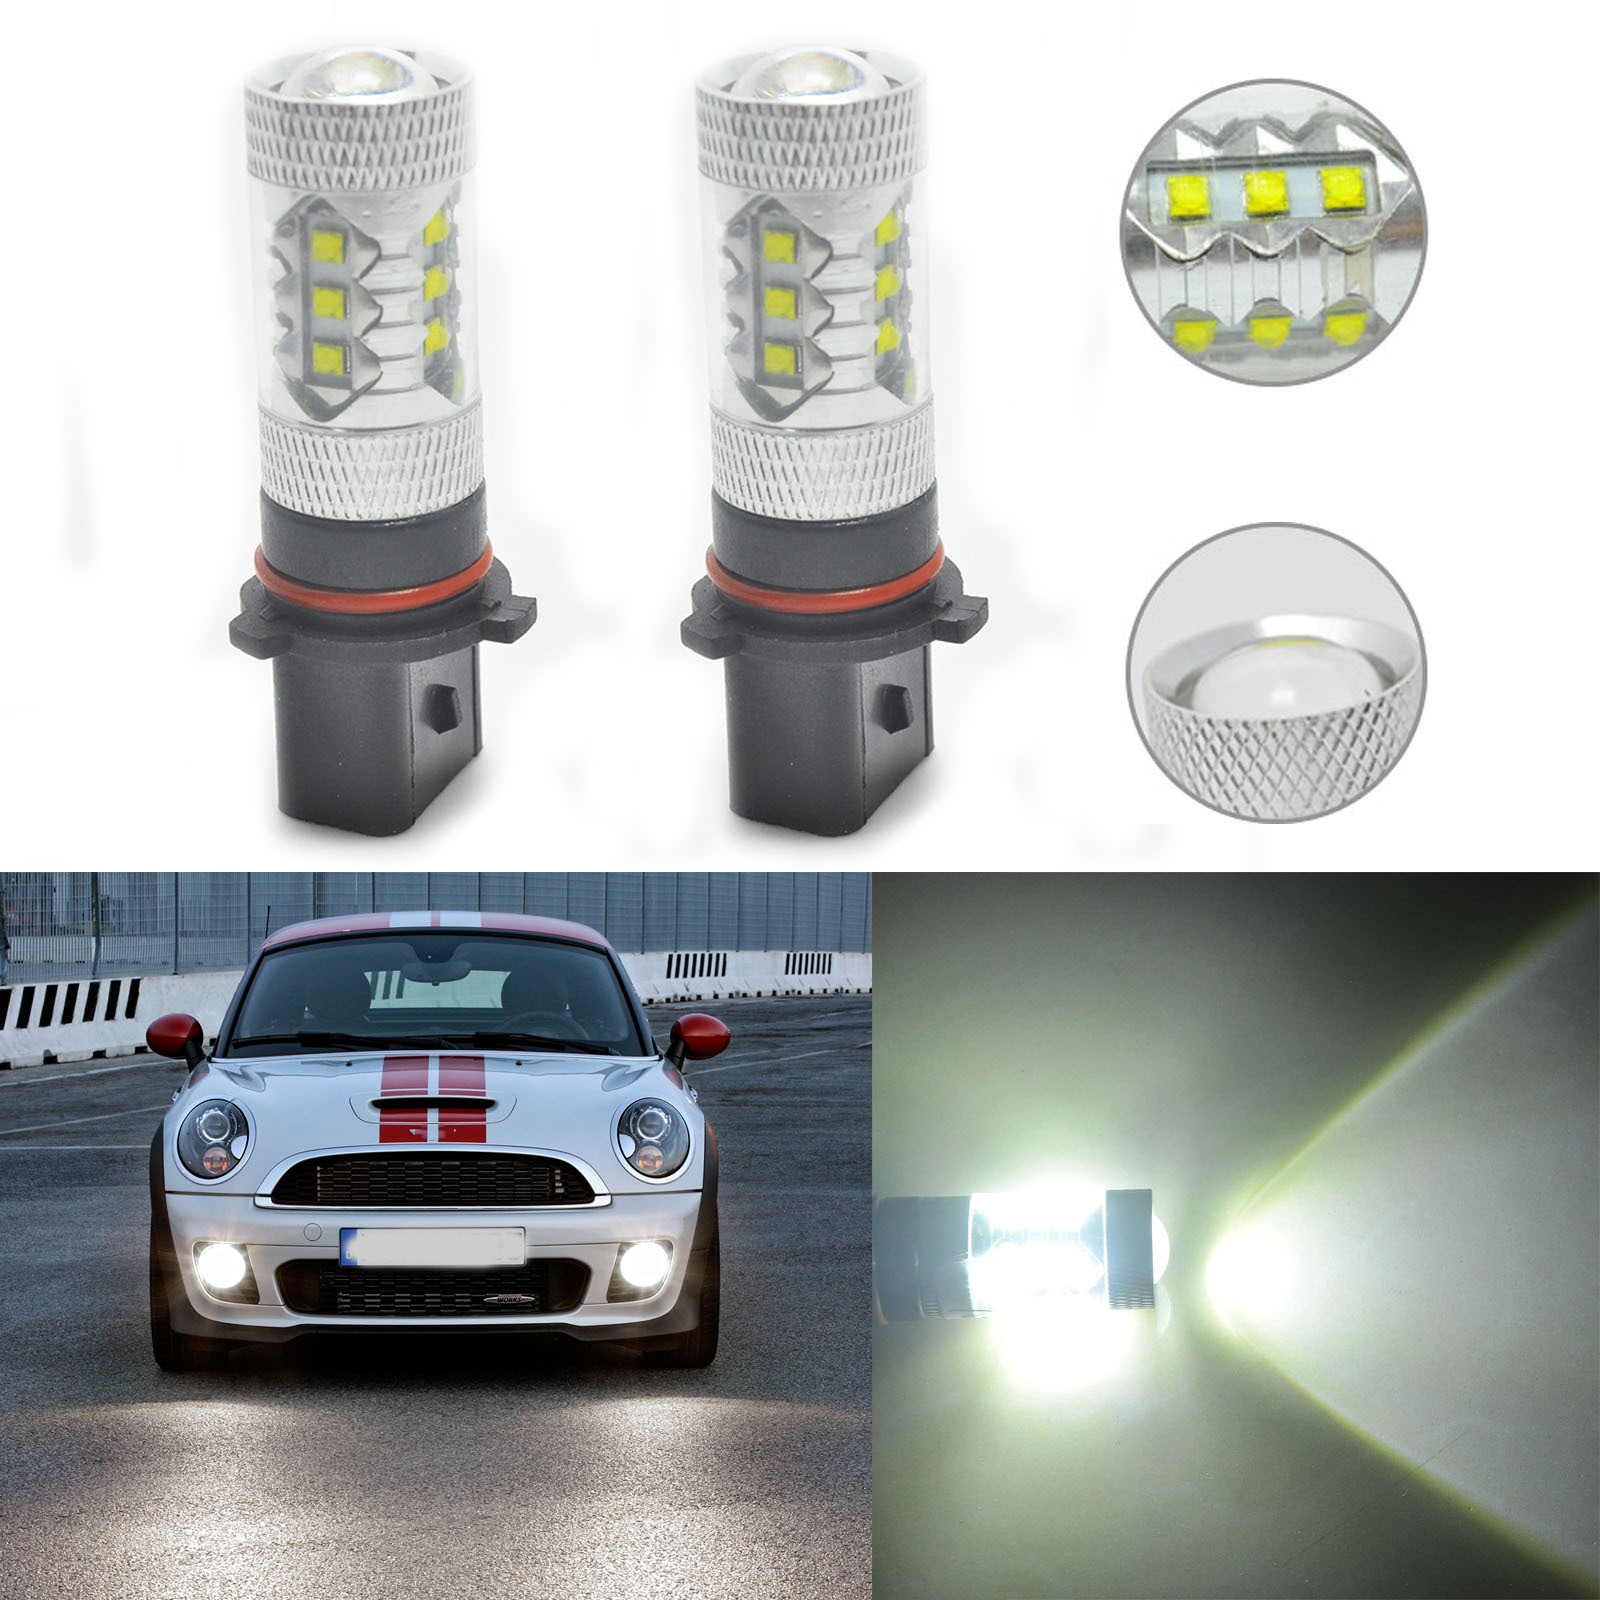 2pcs Car Xenon White 80W P13W LED Bulbs For Audi A4 Q5 Daytime Running Lights DRL<br><br>Aliexpress